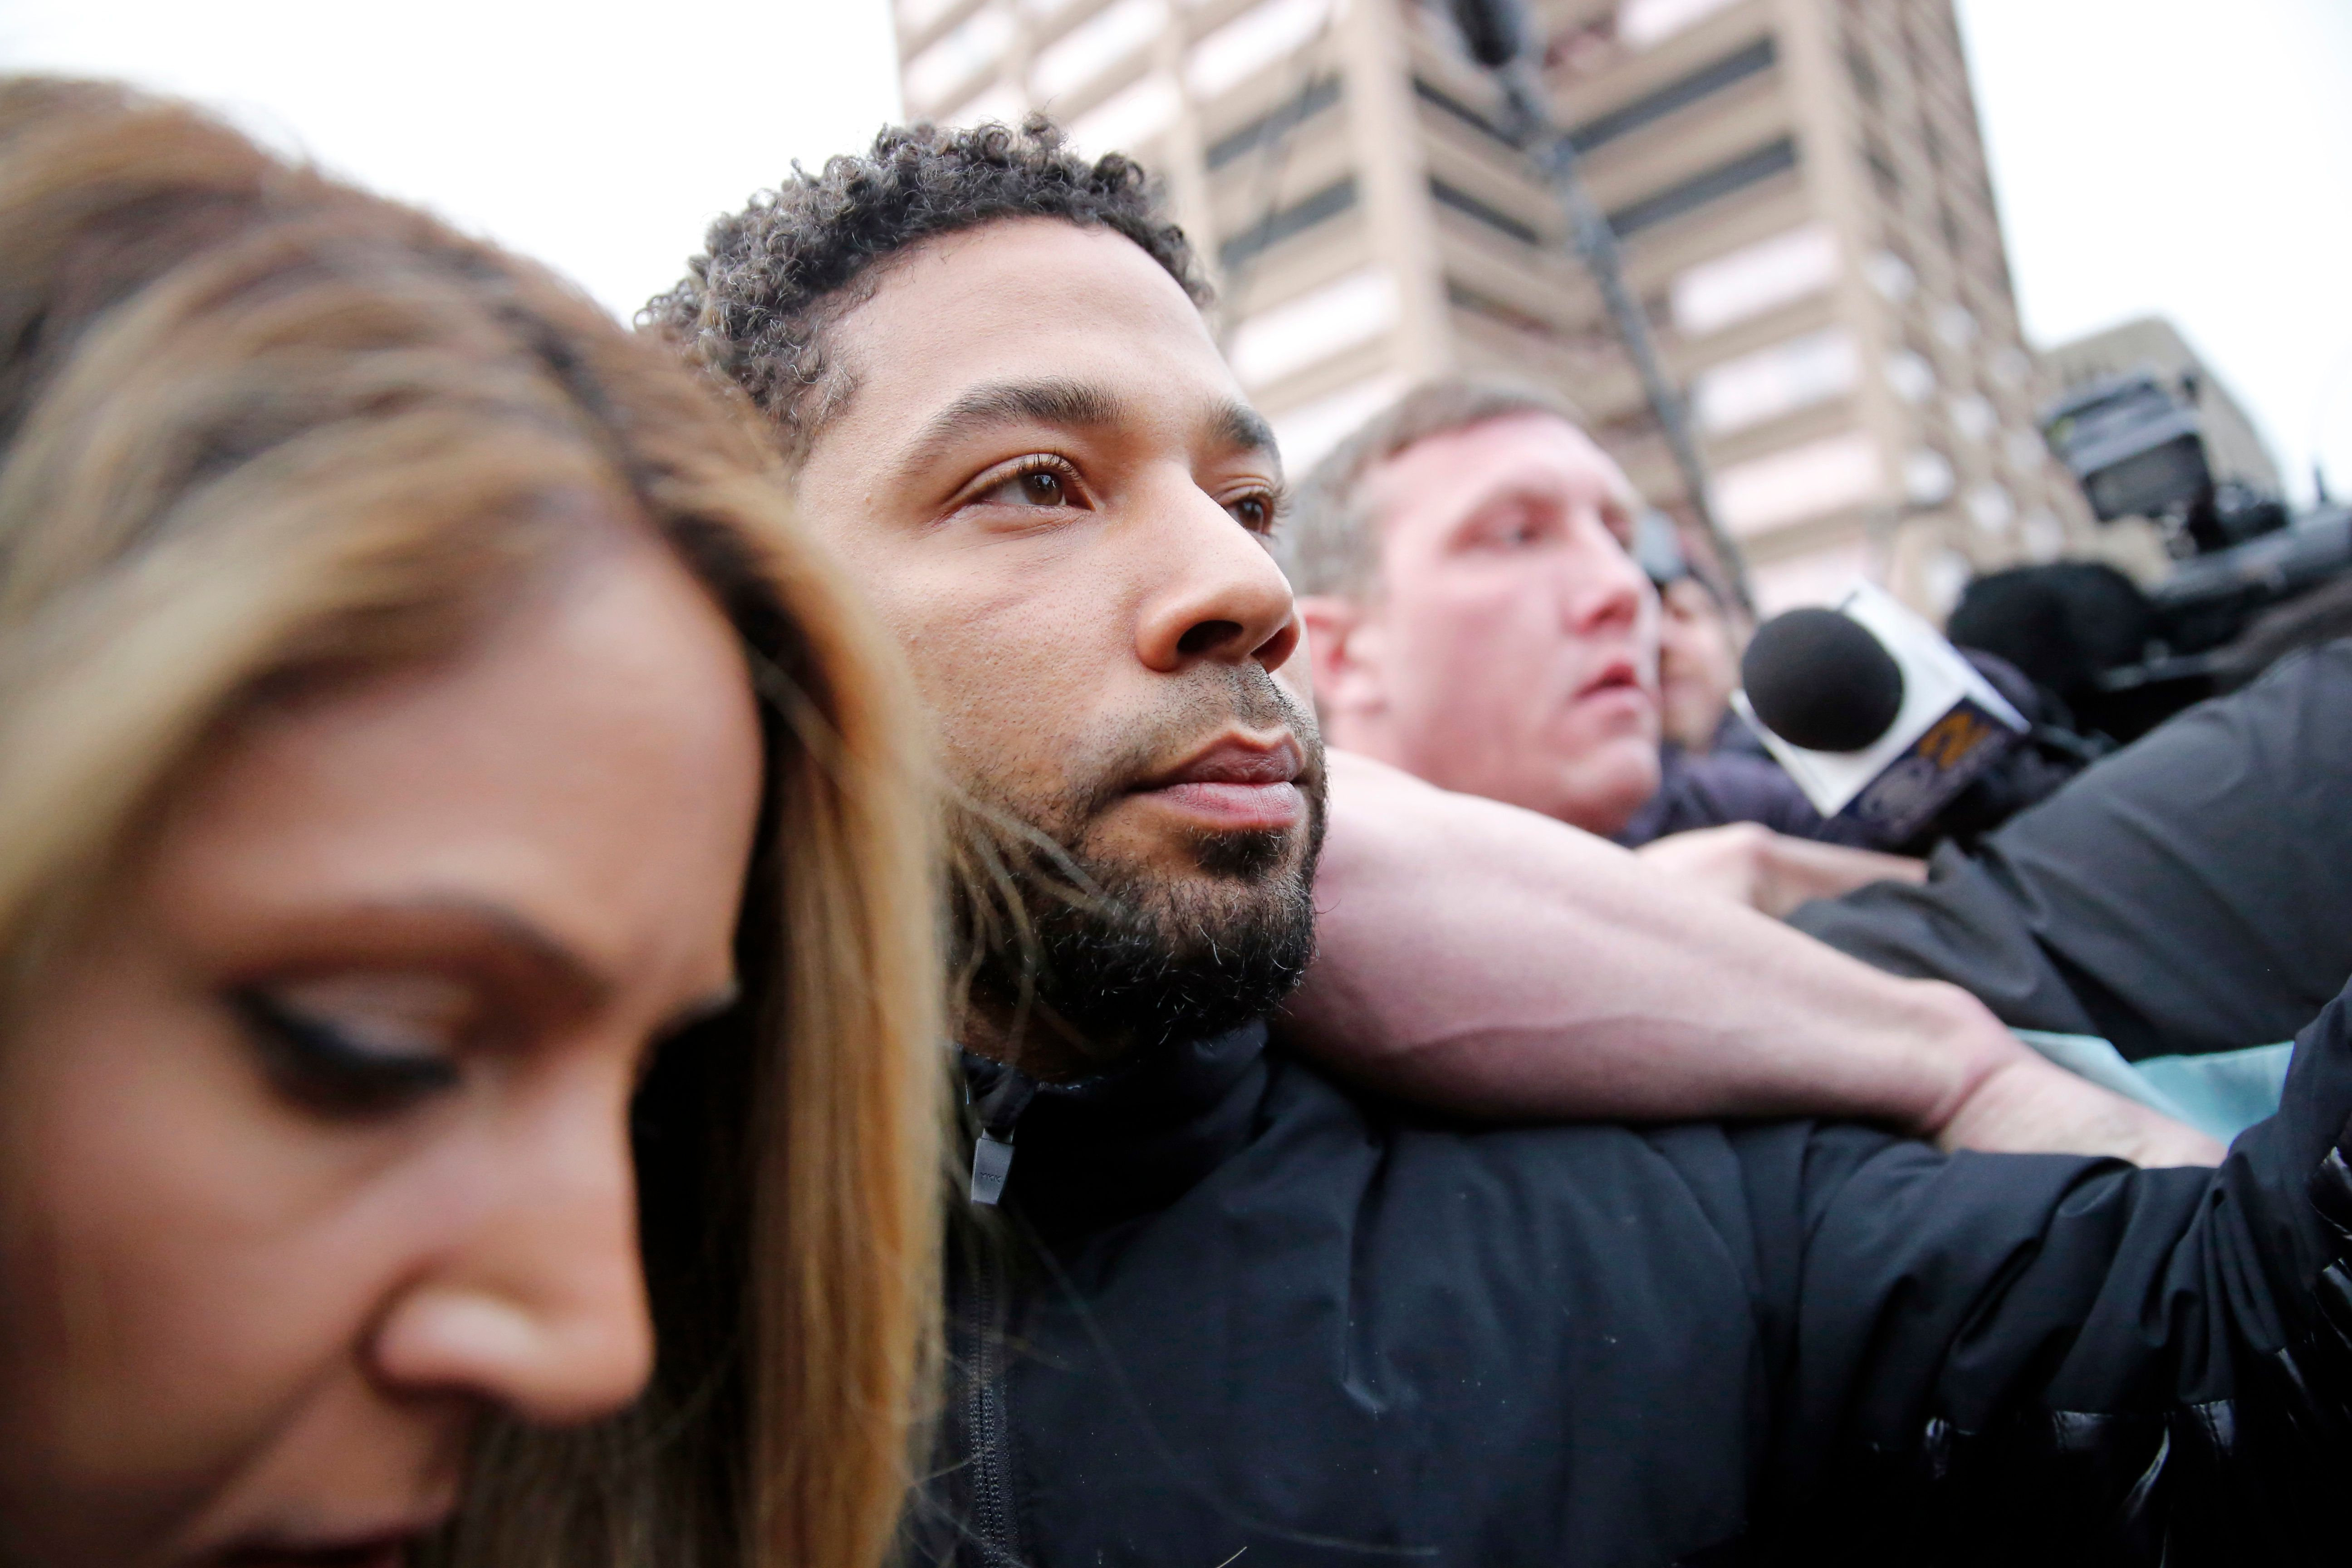 CHICAGO, ILLINOIS - FEBRUARY 21: Empire actor Jussie Smollett leaves Cook County jail after posting bond on February 21, 2019 in Chicago, Illinois.  Smollett has been accused with arranging a homophobic, racist attack against himself in an attempt to raise his profile because he was dissatisfied with his salary.  (Photo by Nuccio DiNuzzo/Getty Images)